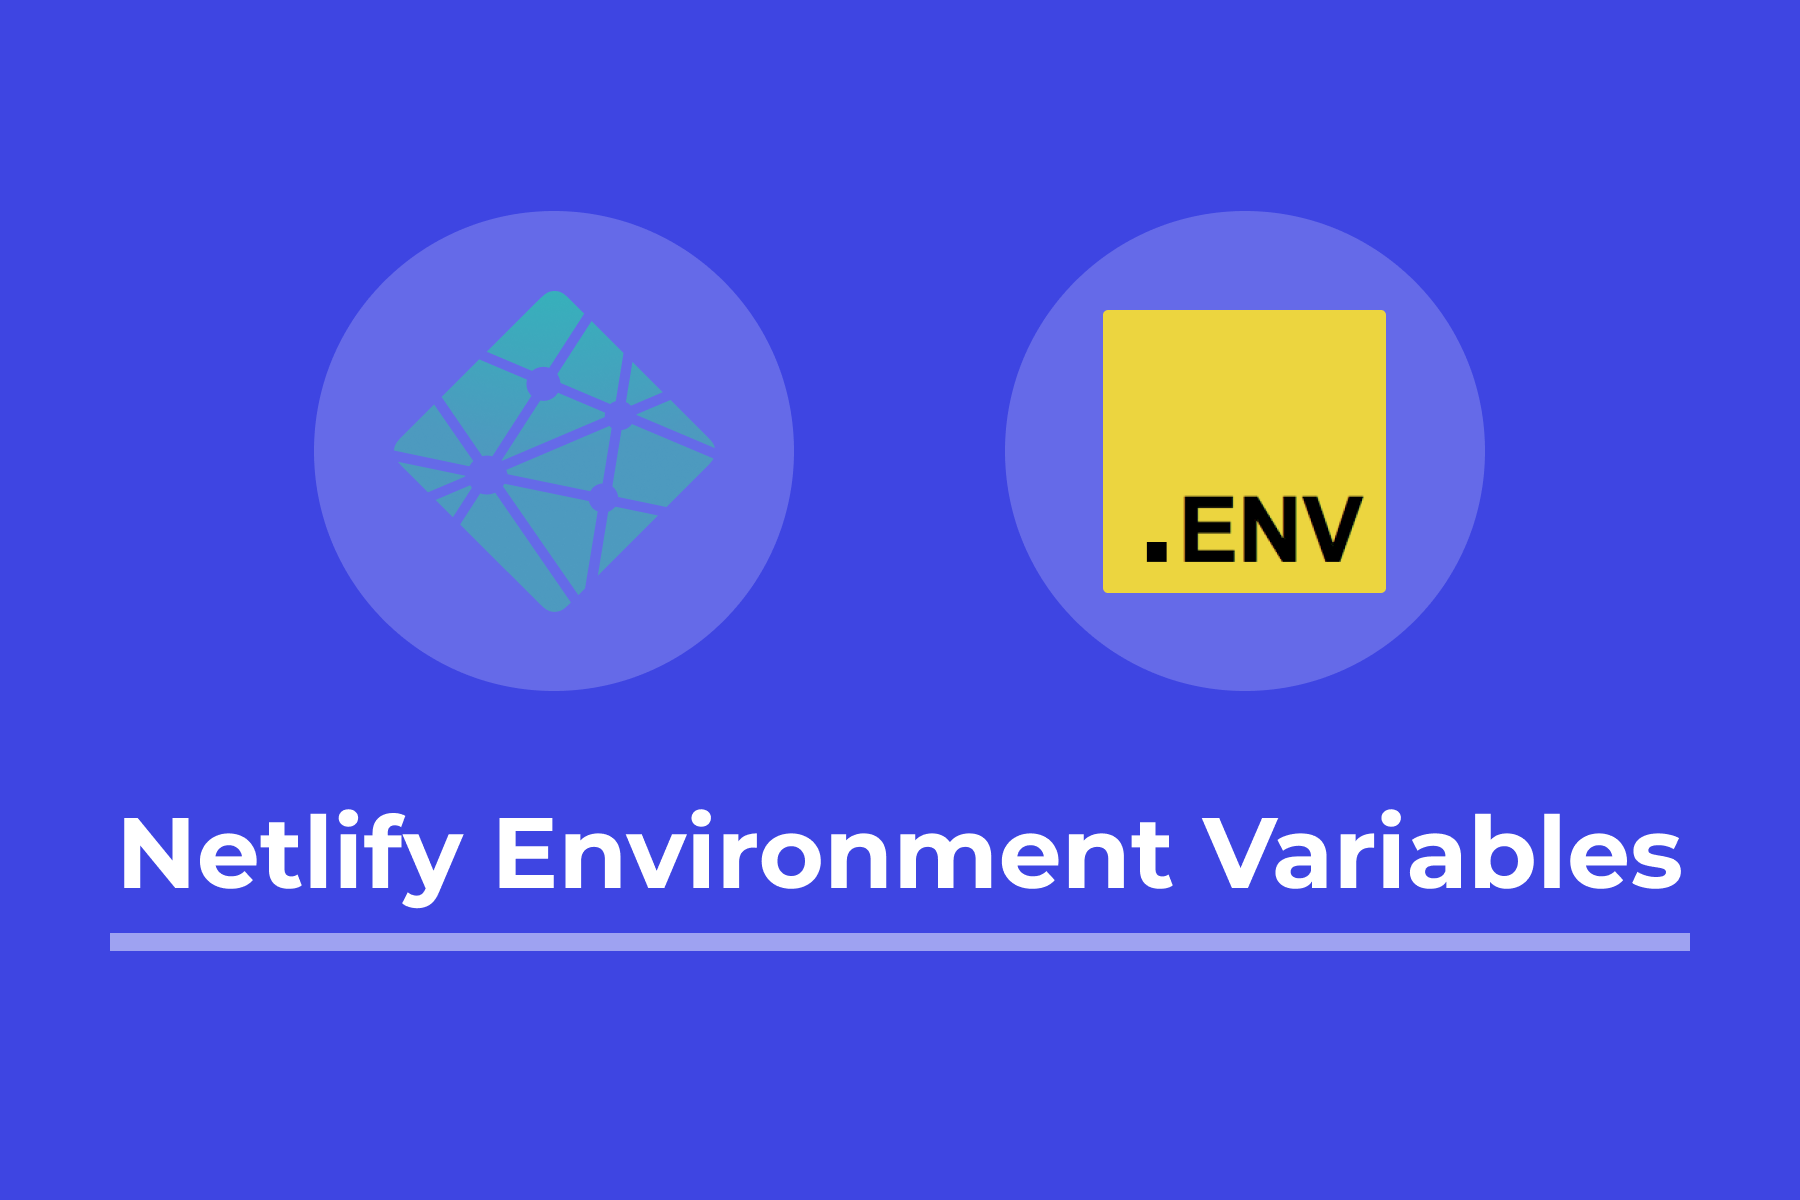 Cover Image: Netlify Environment Variables